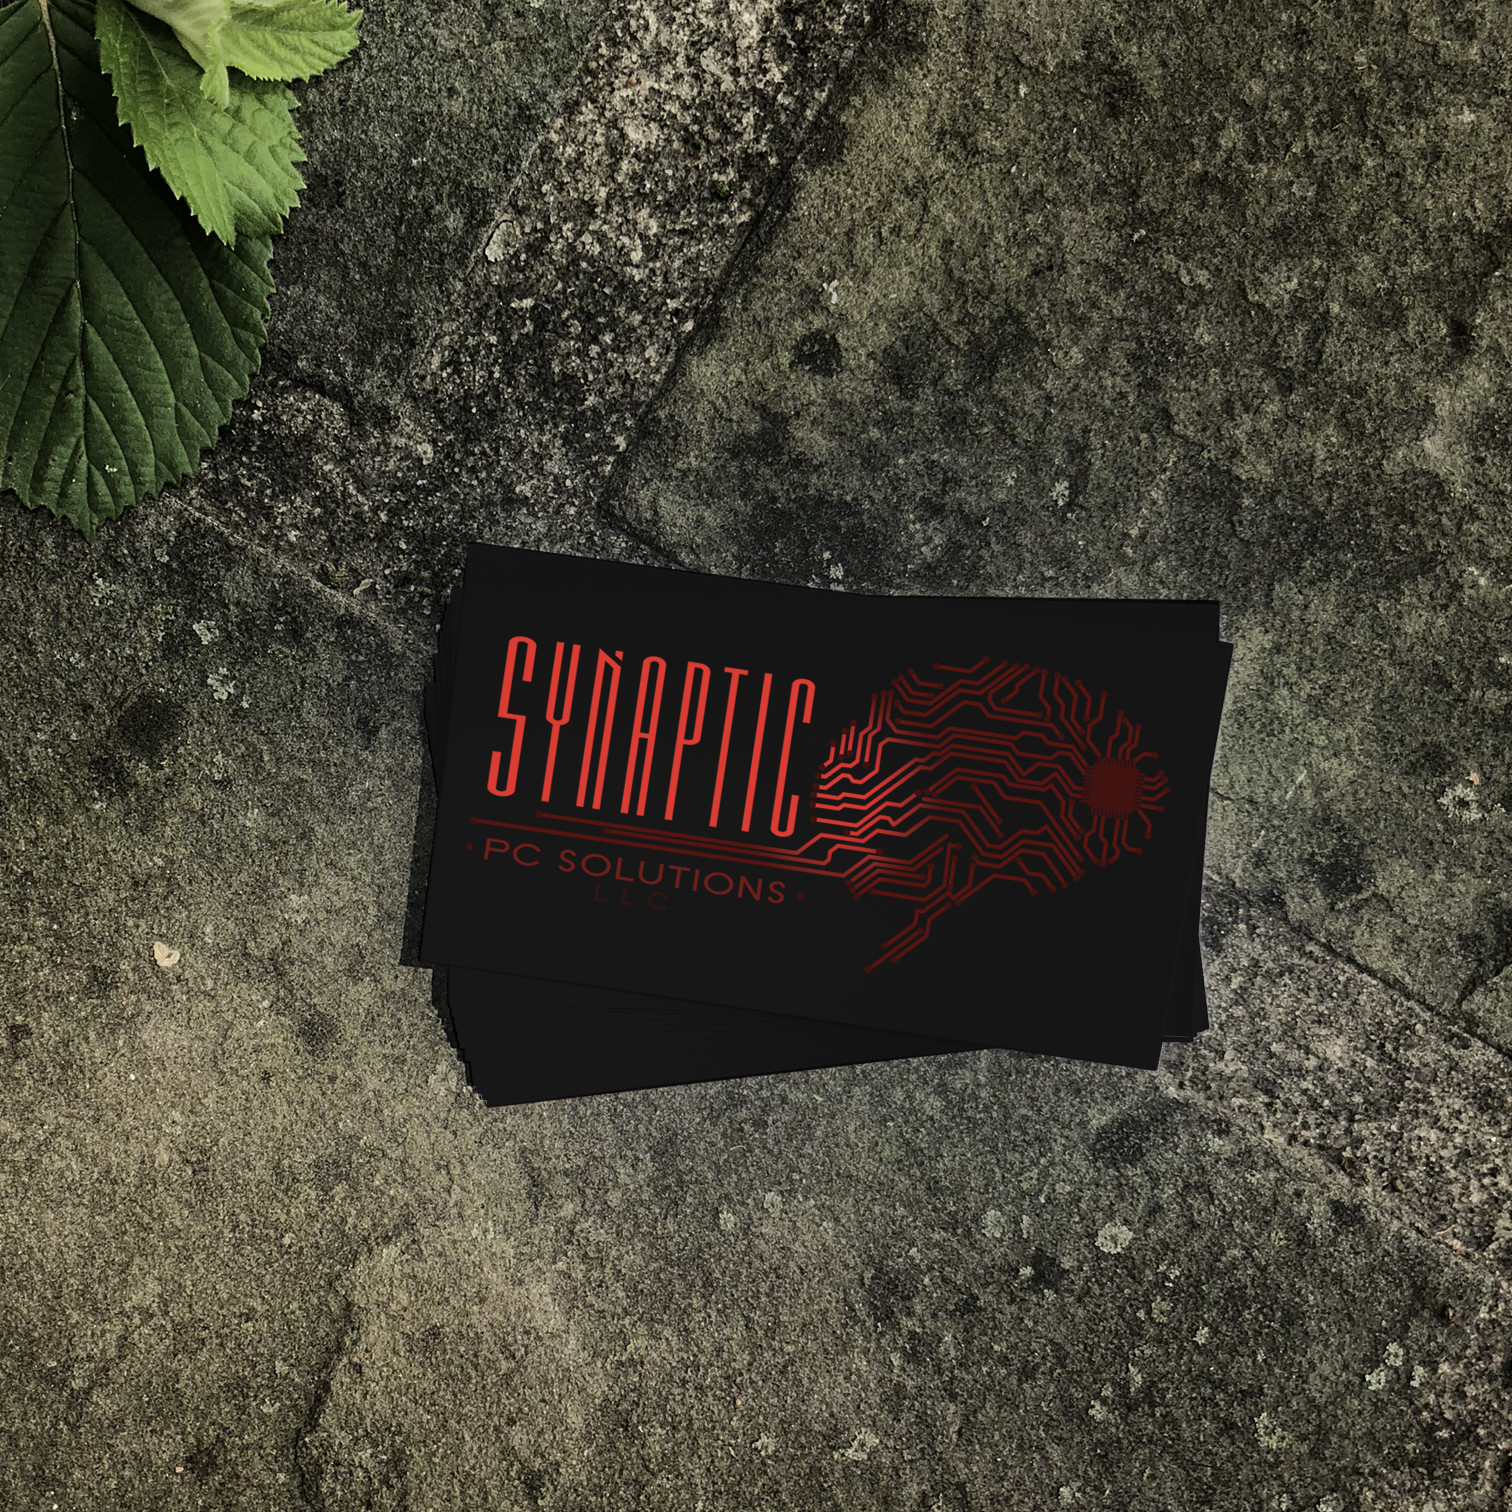 Synaptic PC Solutions Business Card